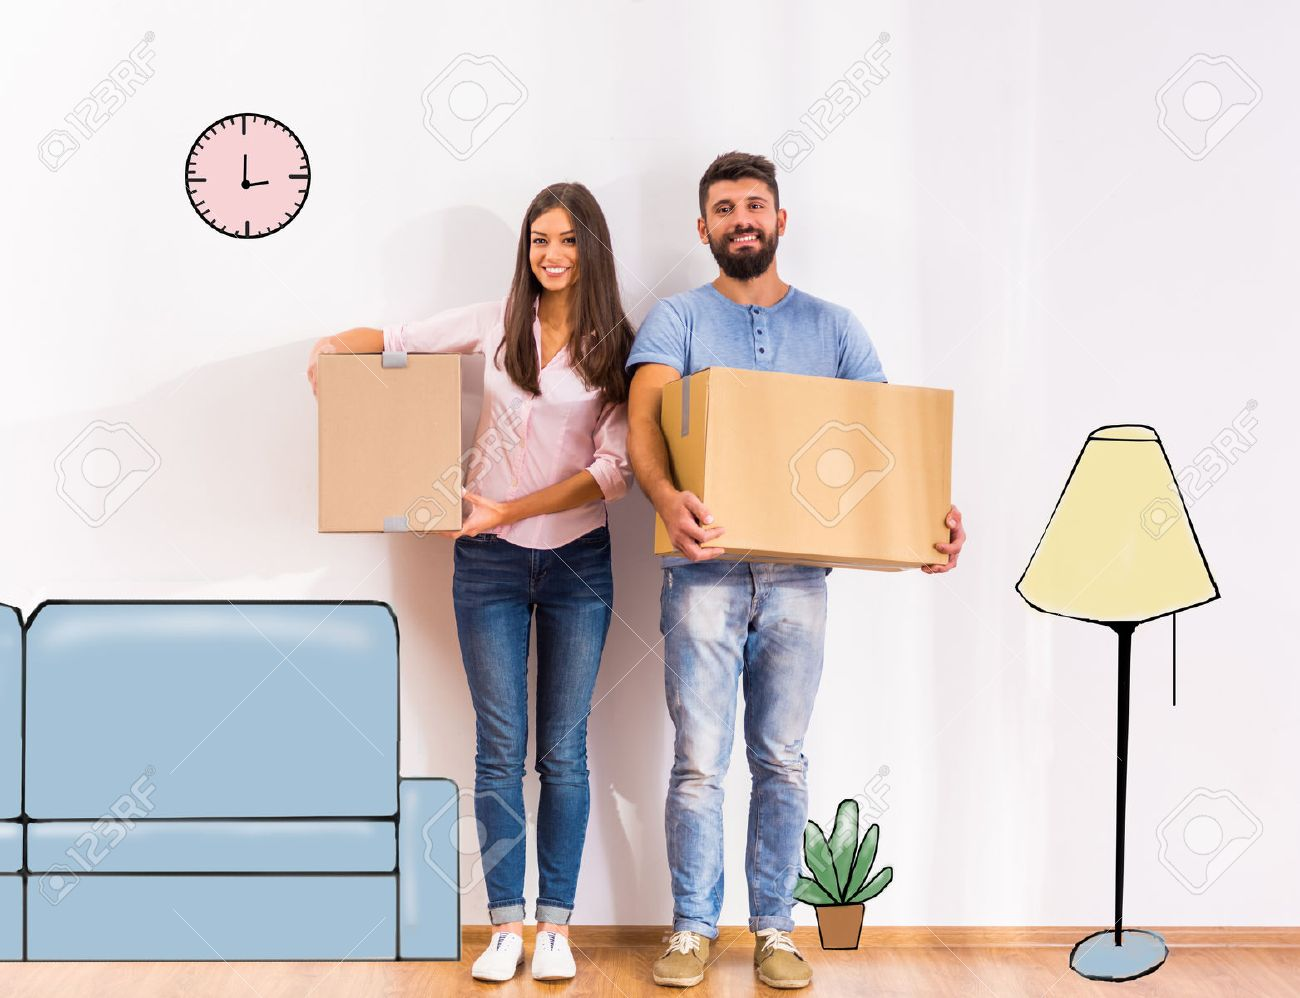 Young happy couple moving to a new home with boxes Standard-Bild - 46977813